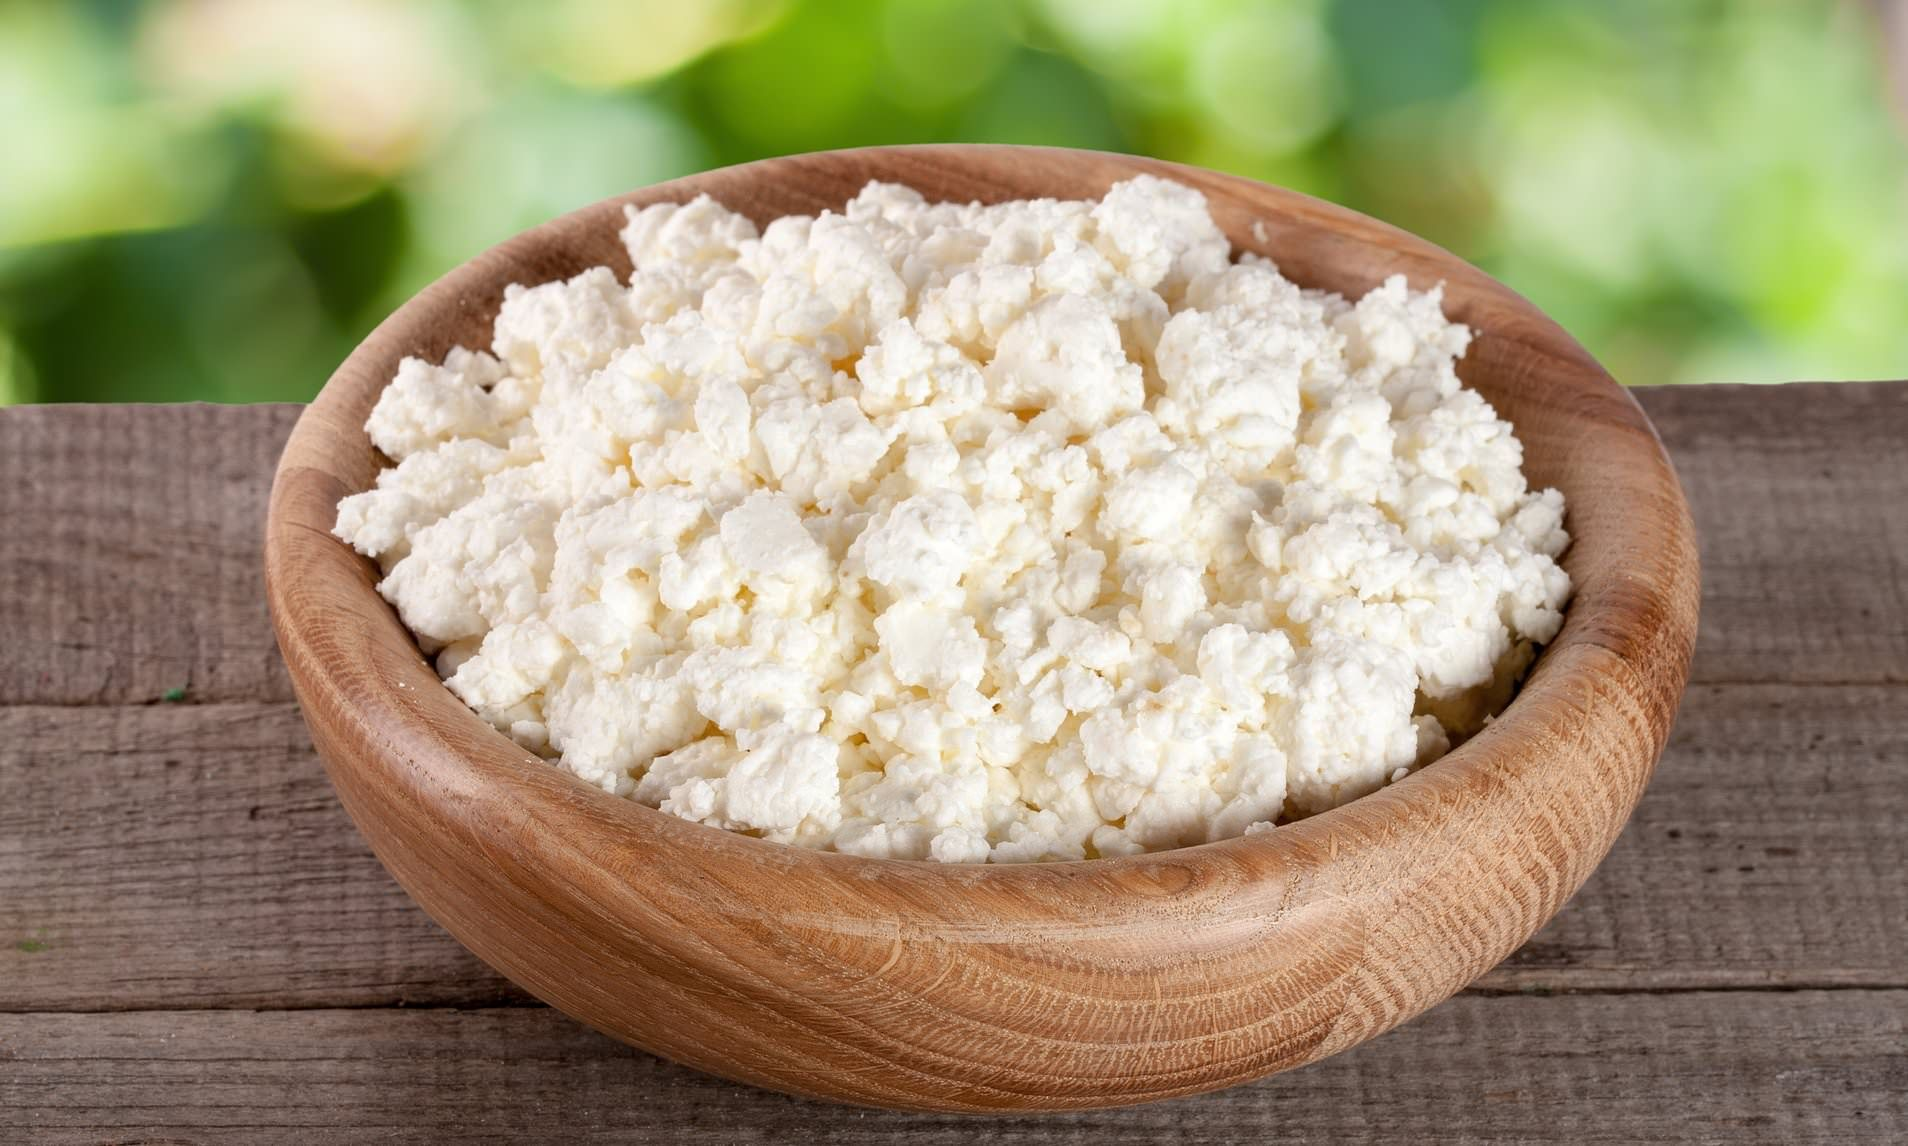 Eating Cottage Cheese Before Bed Could Make You Healthier